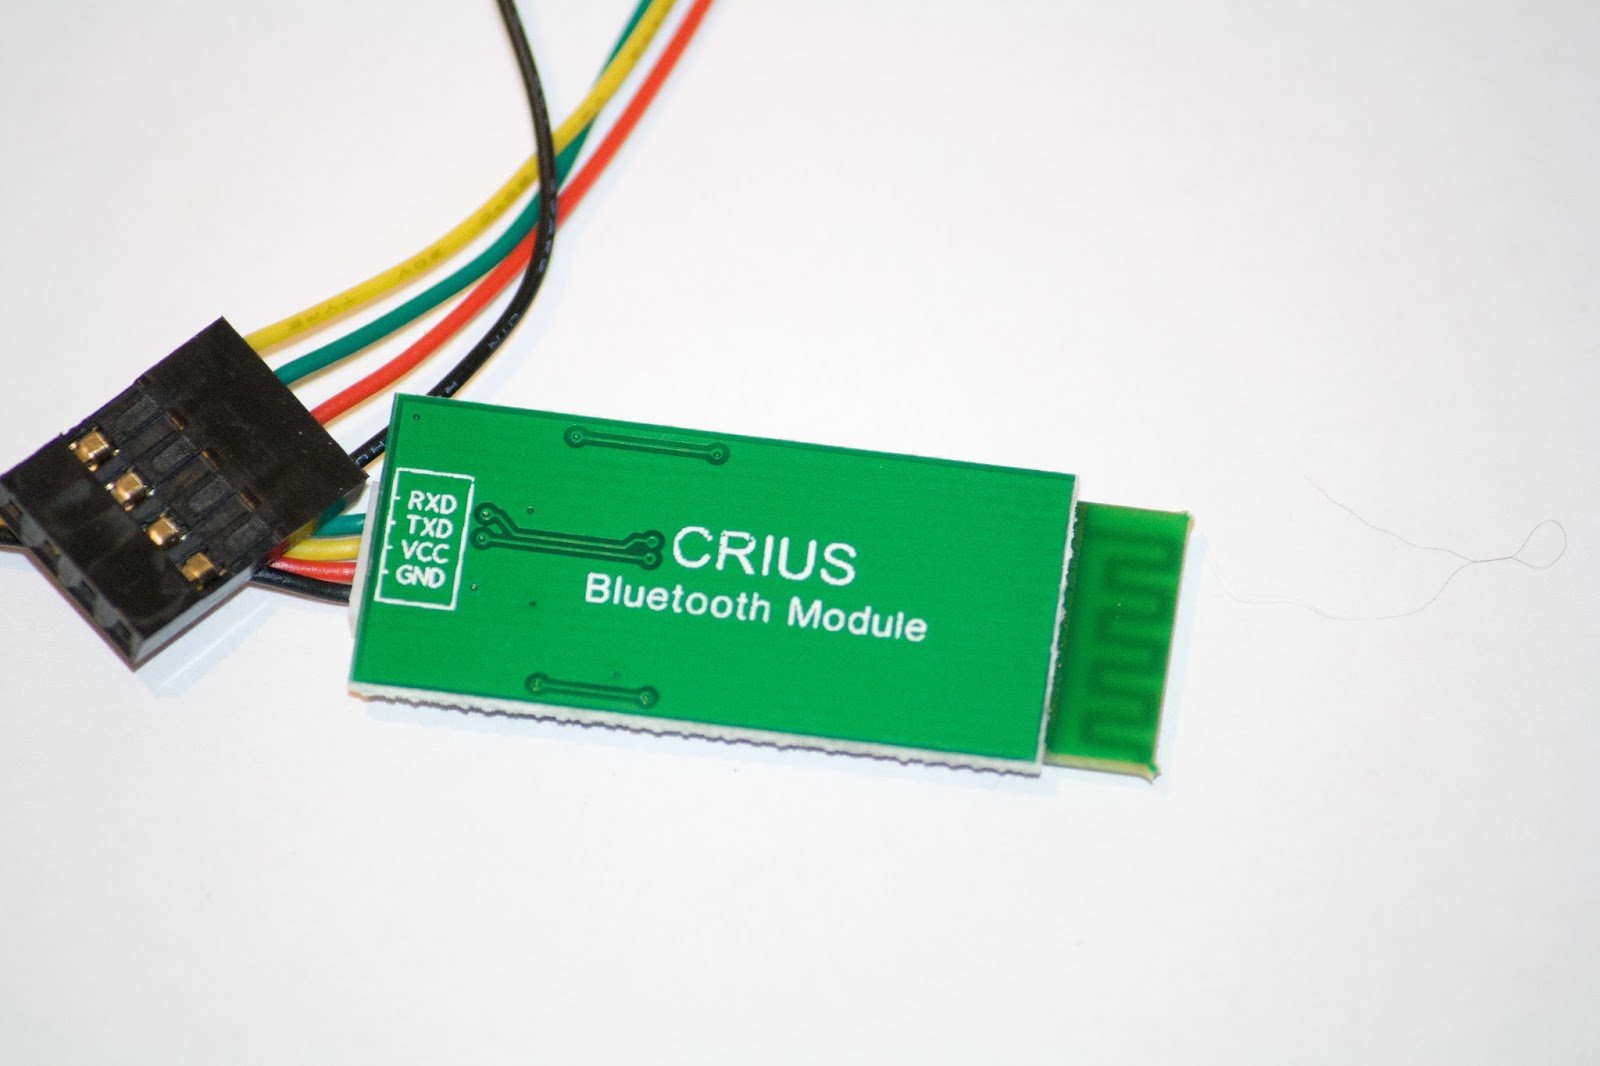 hight resolution of the board itself is a crius multiwii se v2 5 i bought this board not knowing much about the configuration process but i am having difficulty finding